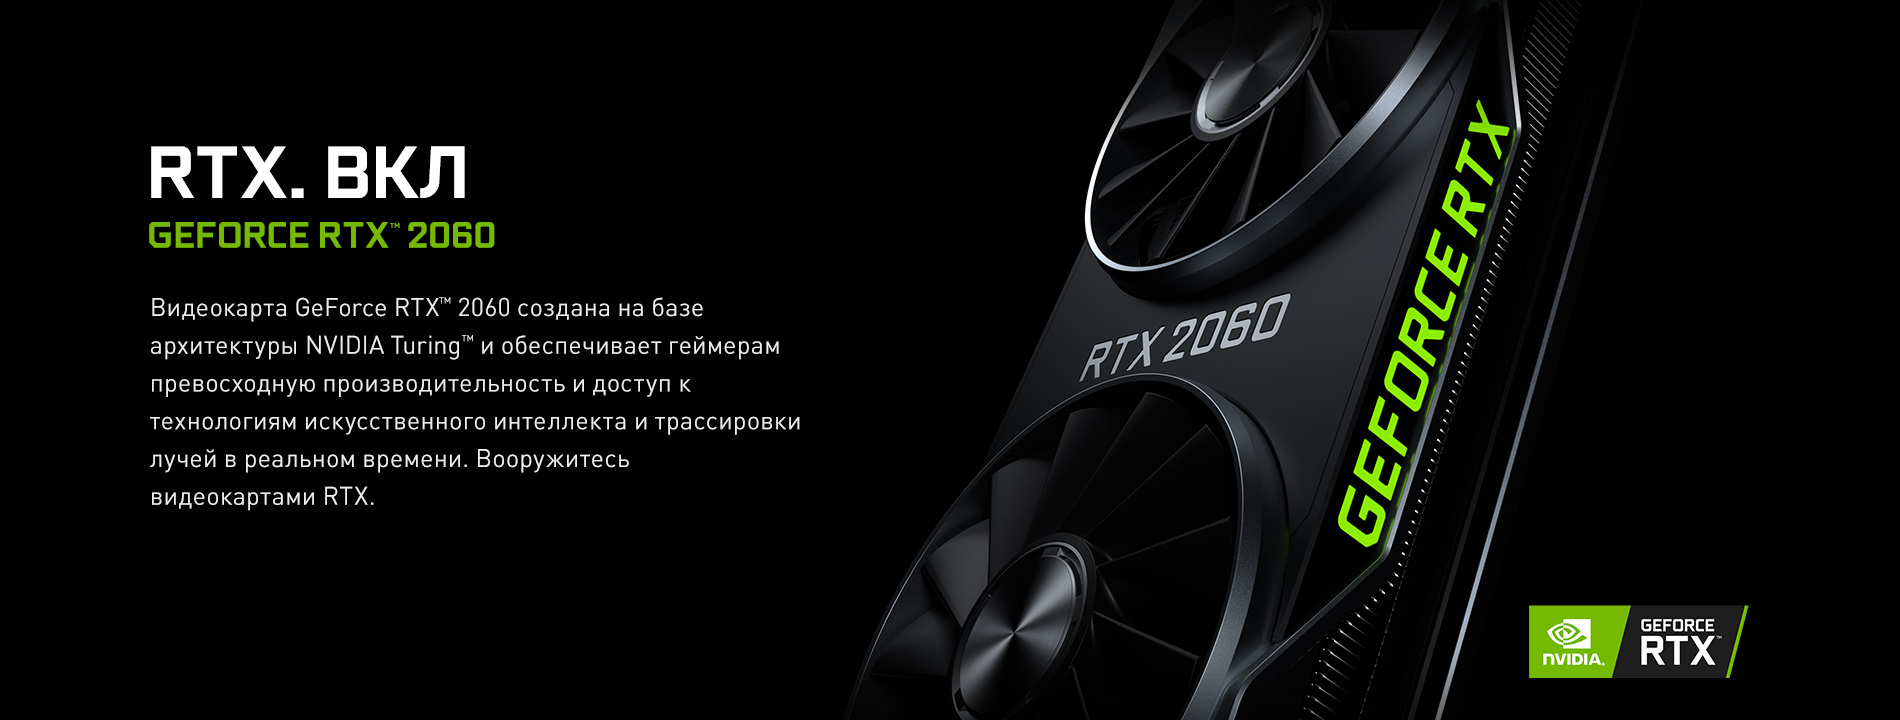 Встречаем NVIDIA GeForce RTX 2060